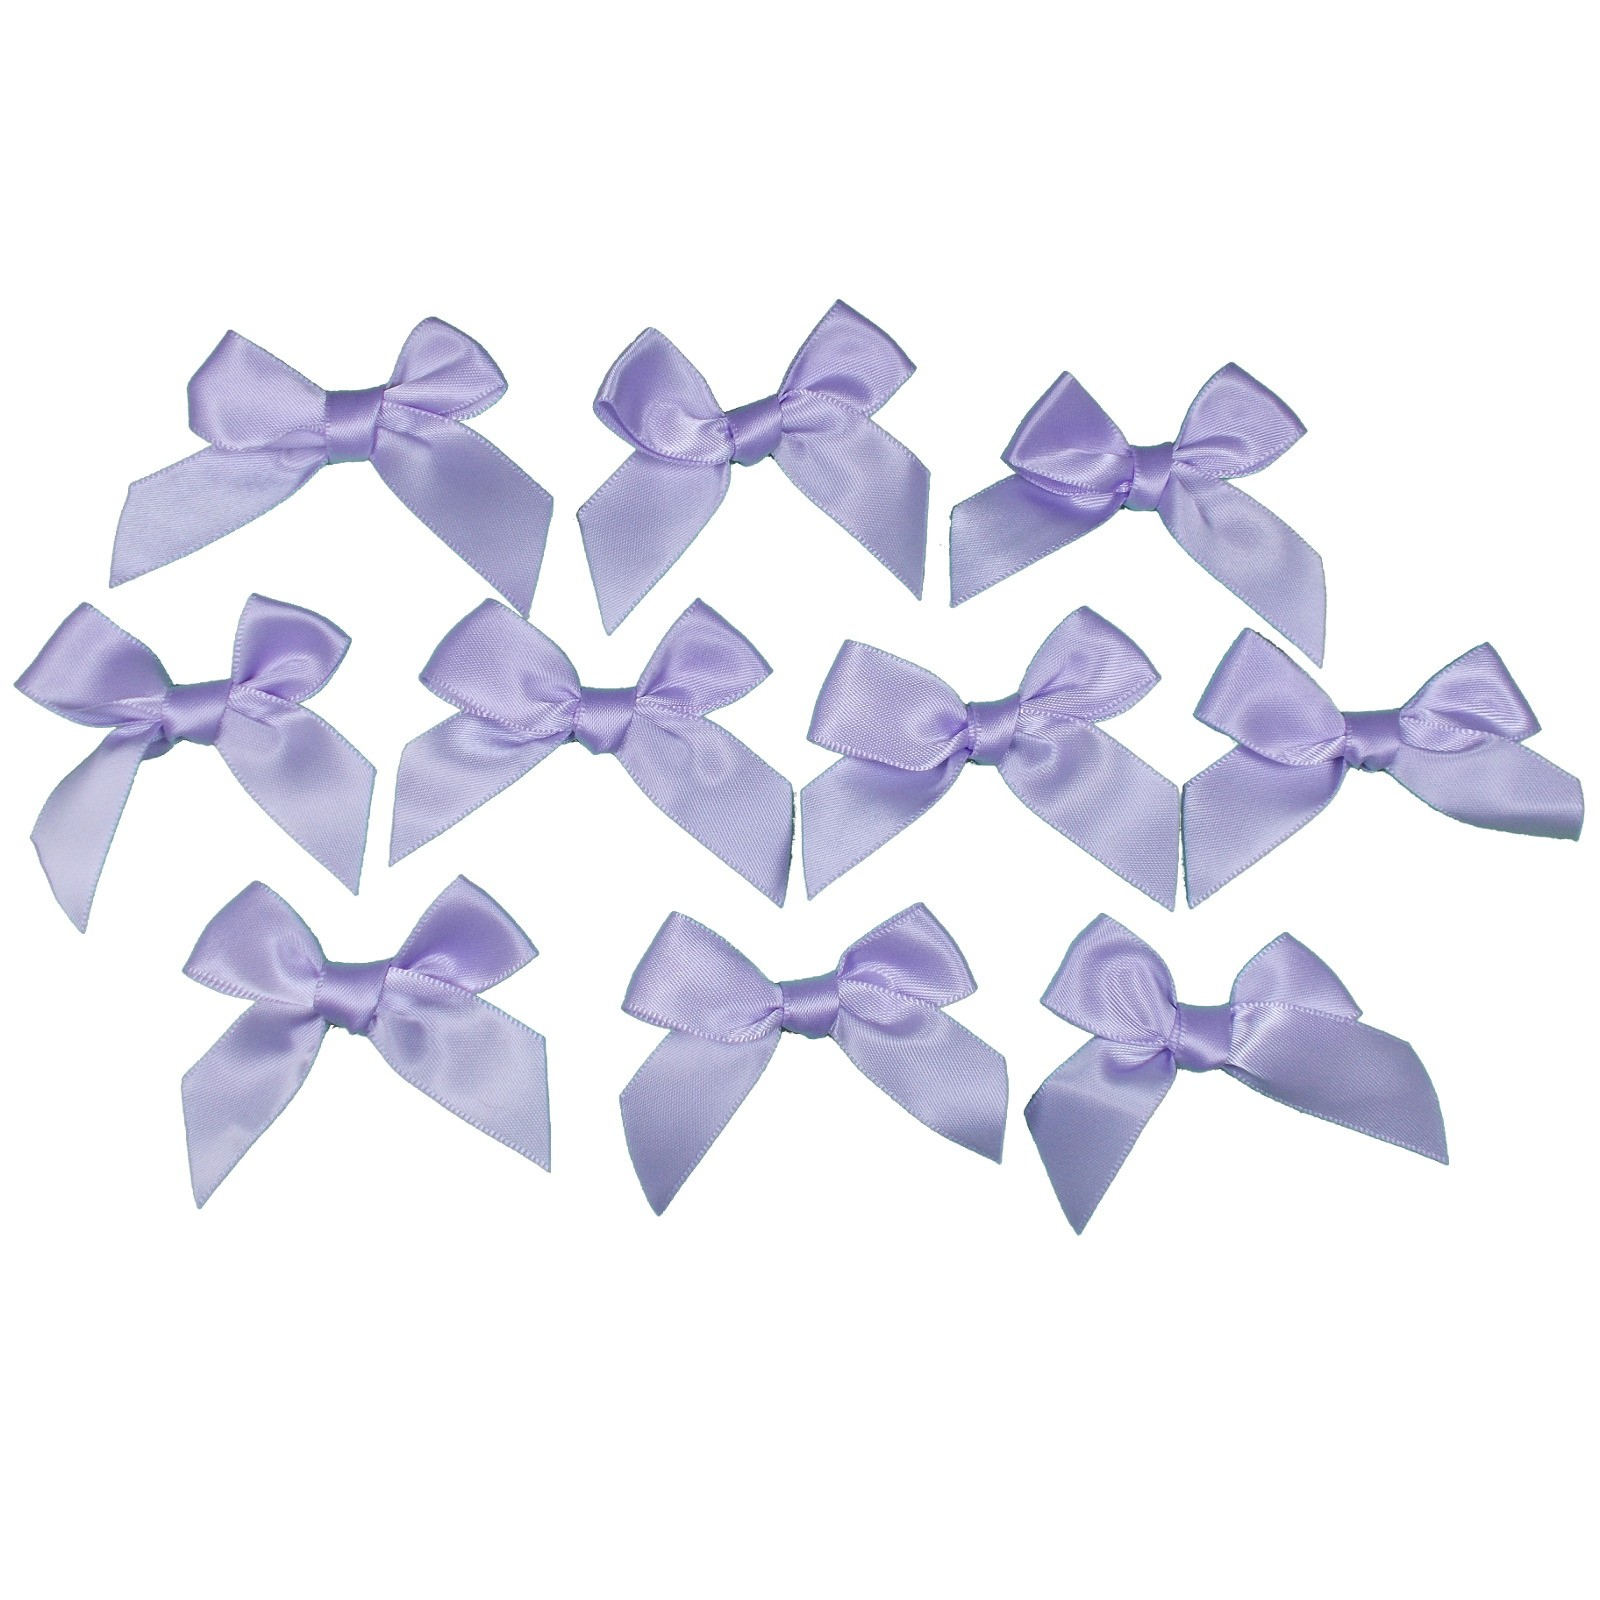 Satin Ribbon Bows approx 5.5cm wide Lilac Pack of 10